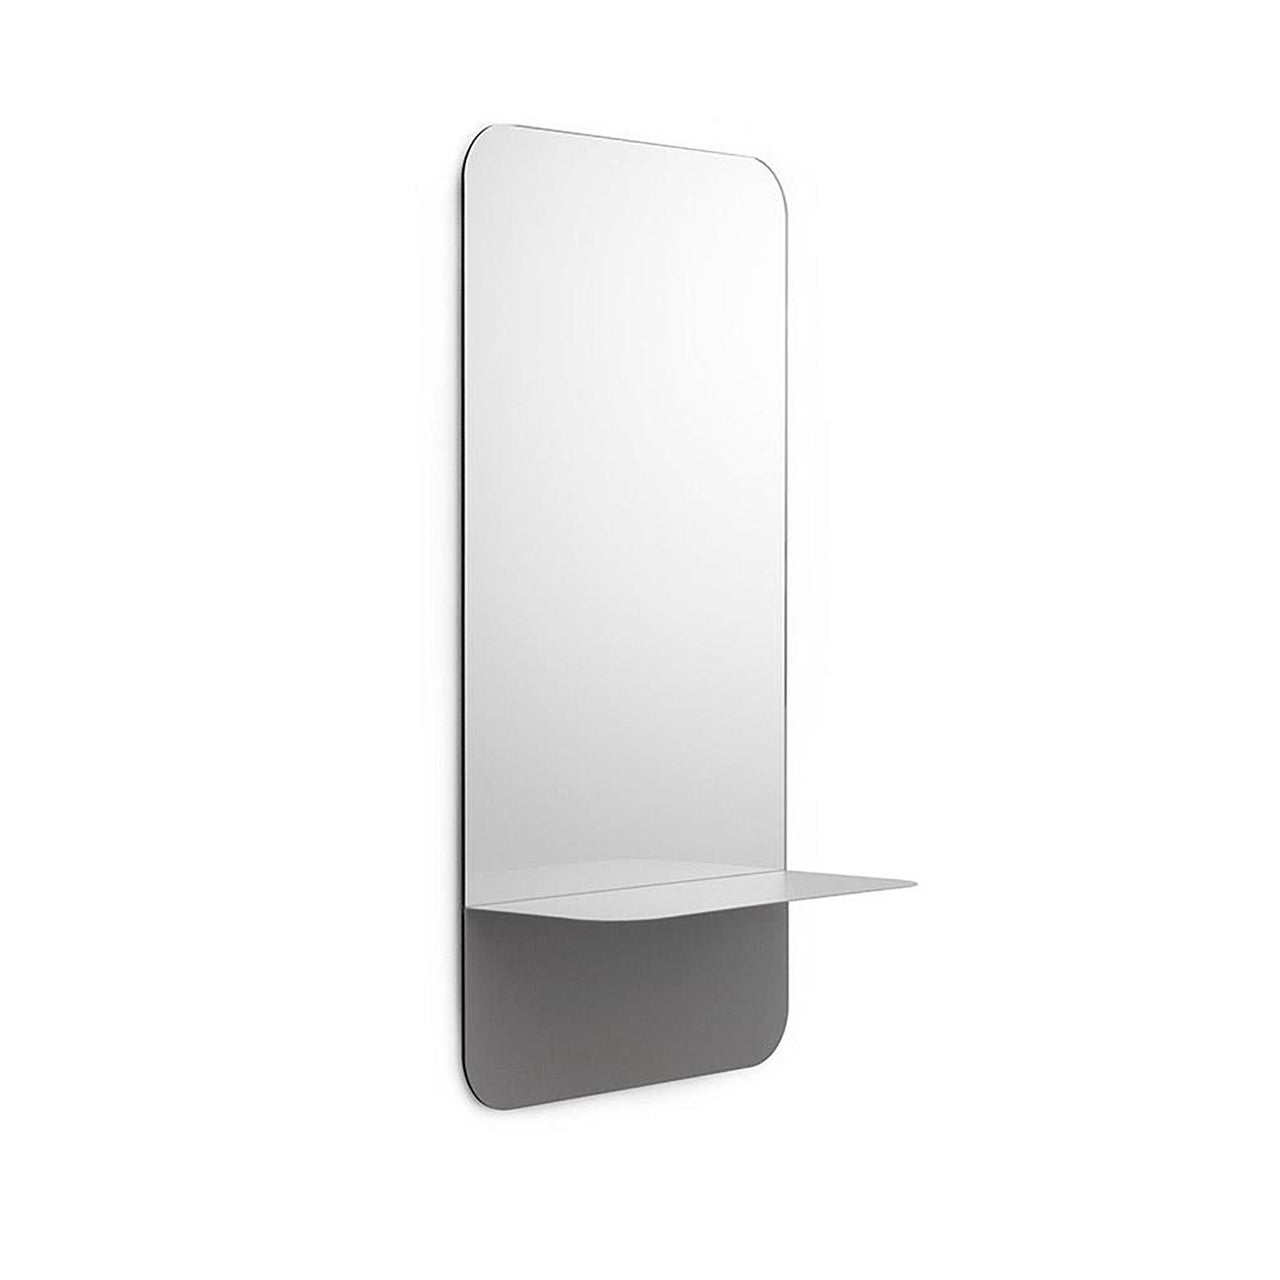 Horizon Mirror Vertical - Grey